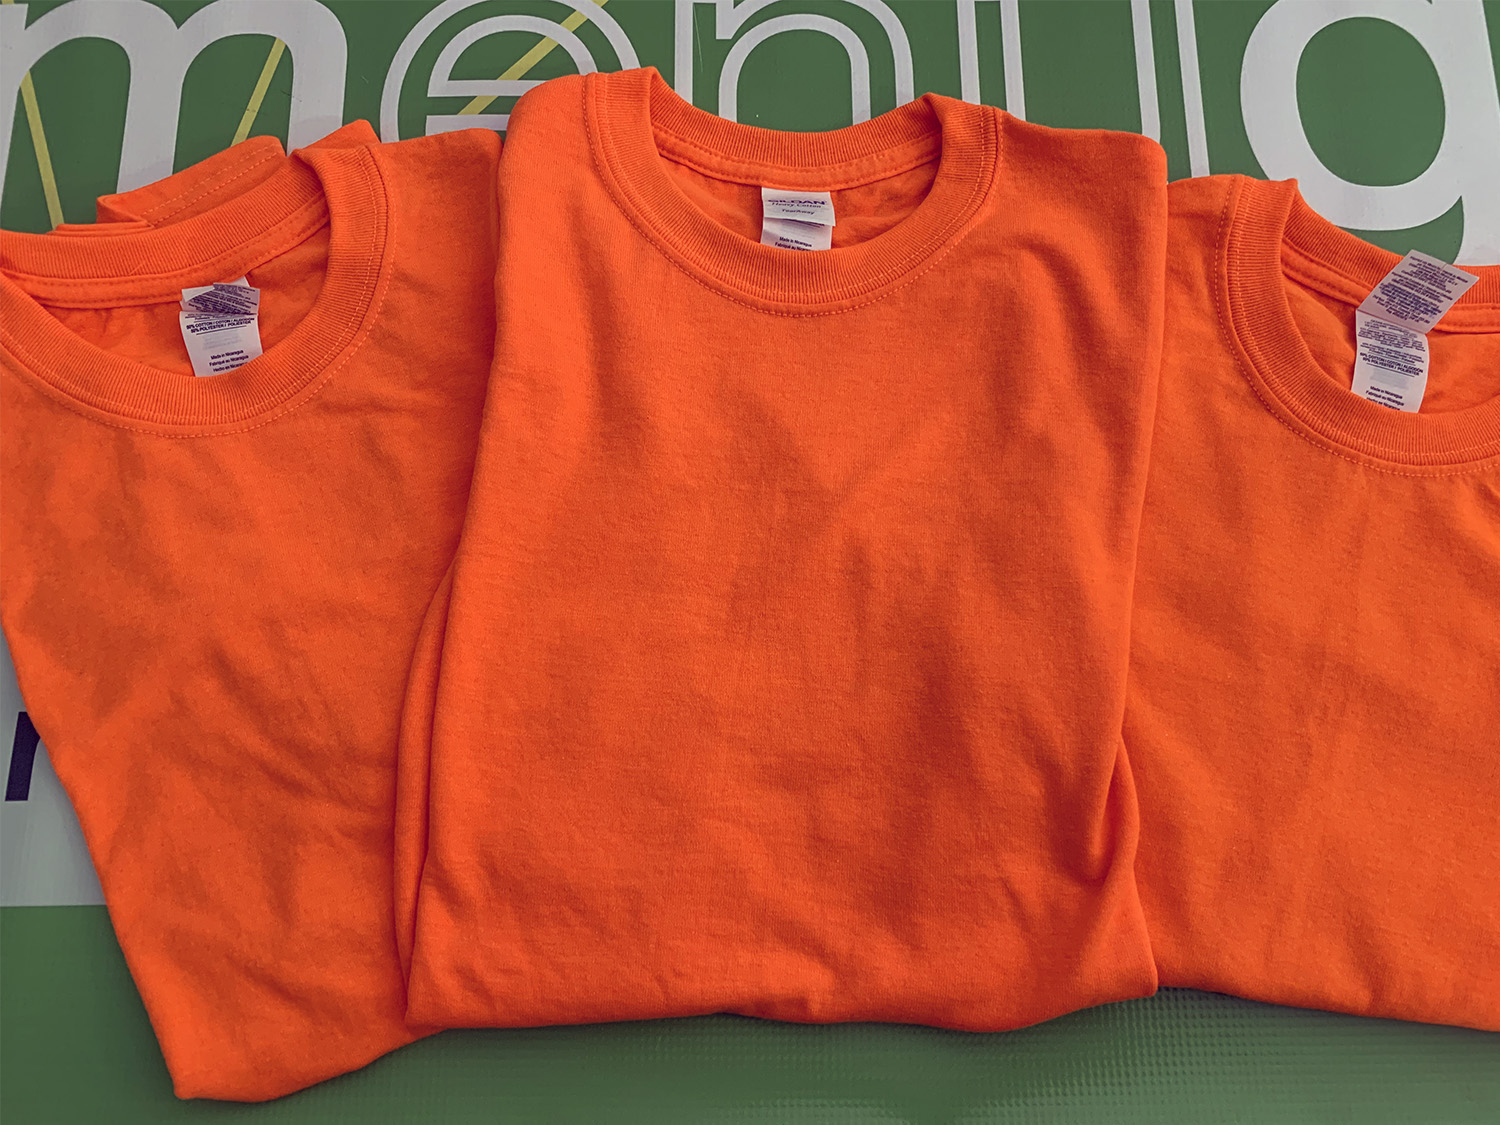 Lot of 3 Gildan Mens HeavyCotton Tear Away T-shirts Orange S